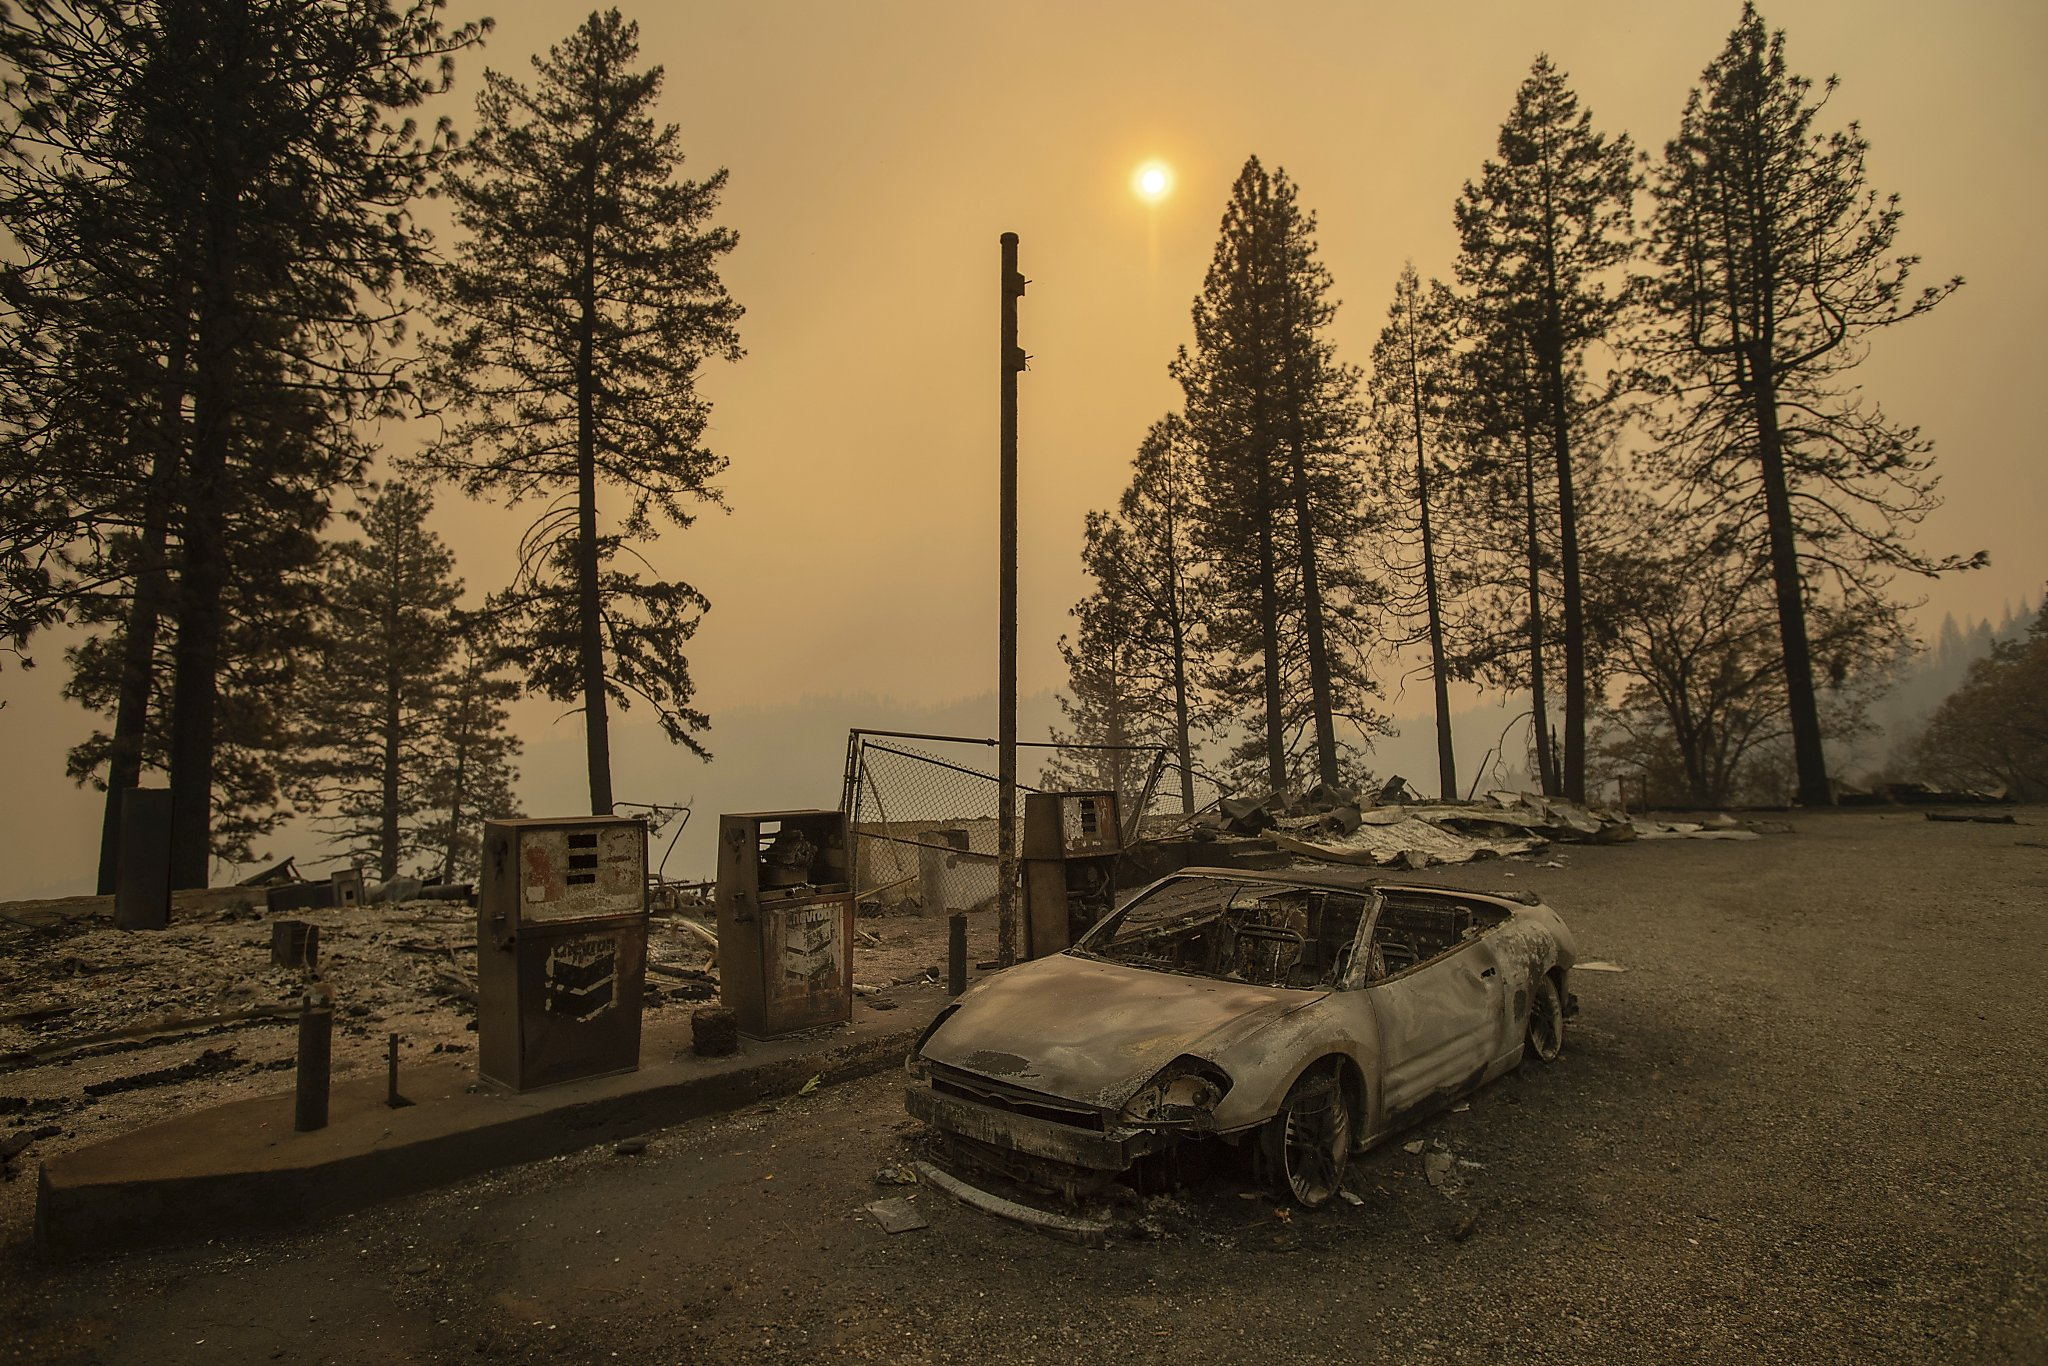 Camp Fire What We Know About The Deadly Blaze That Destroyed